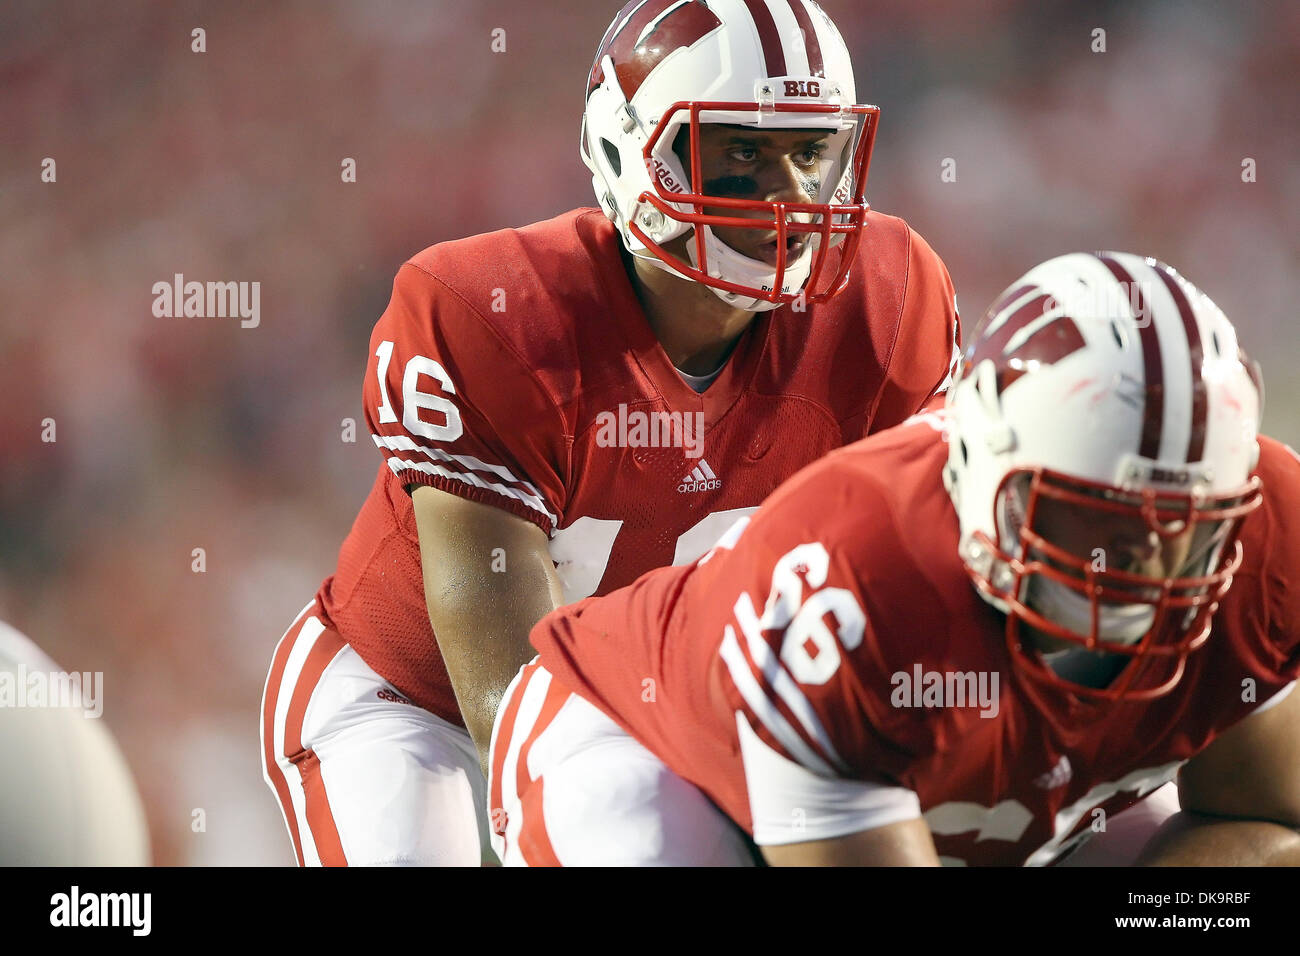 info for cce68 d488f Sept. 1, 2011 - Madison, Wisconsin, U.S - Wisconsin Badgers ...